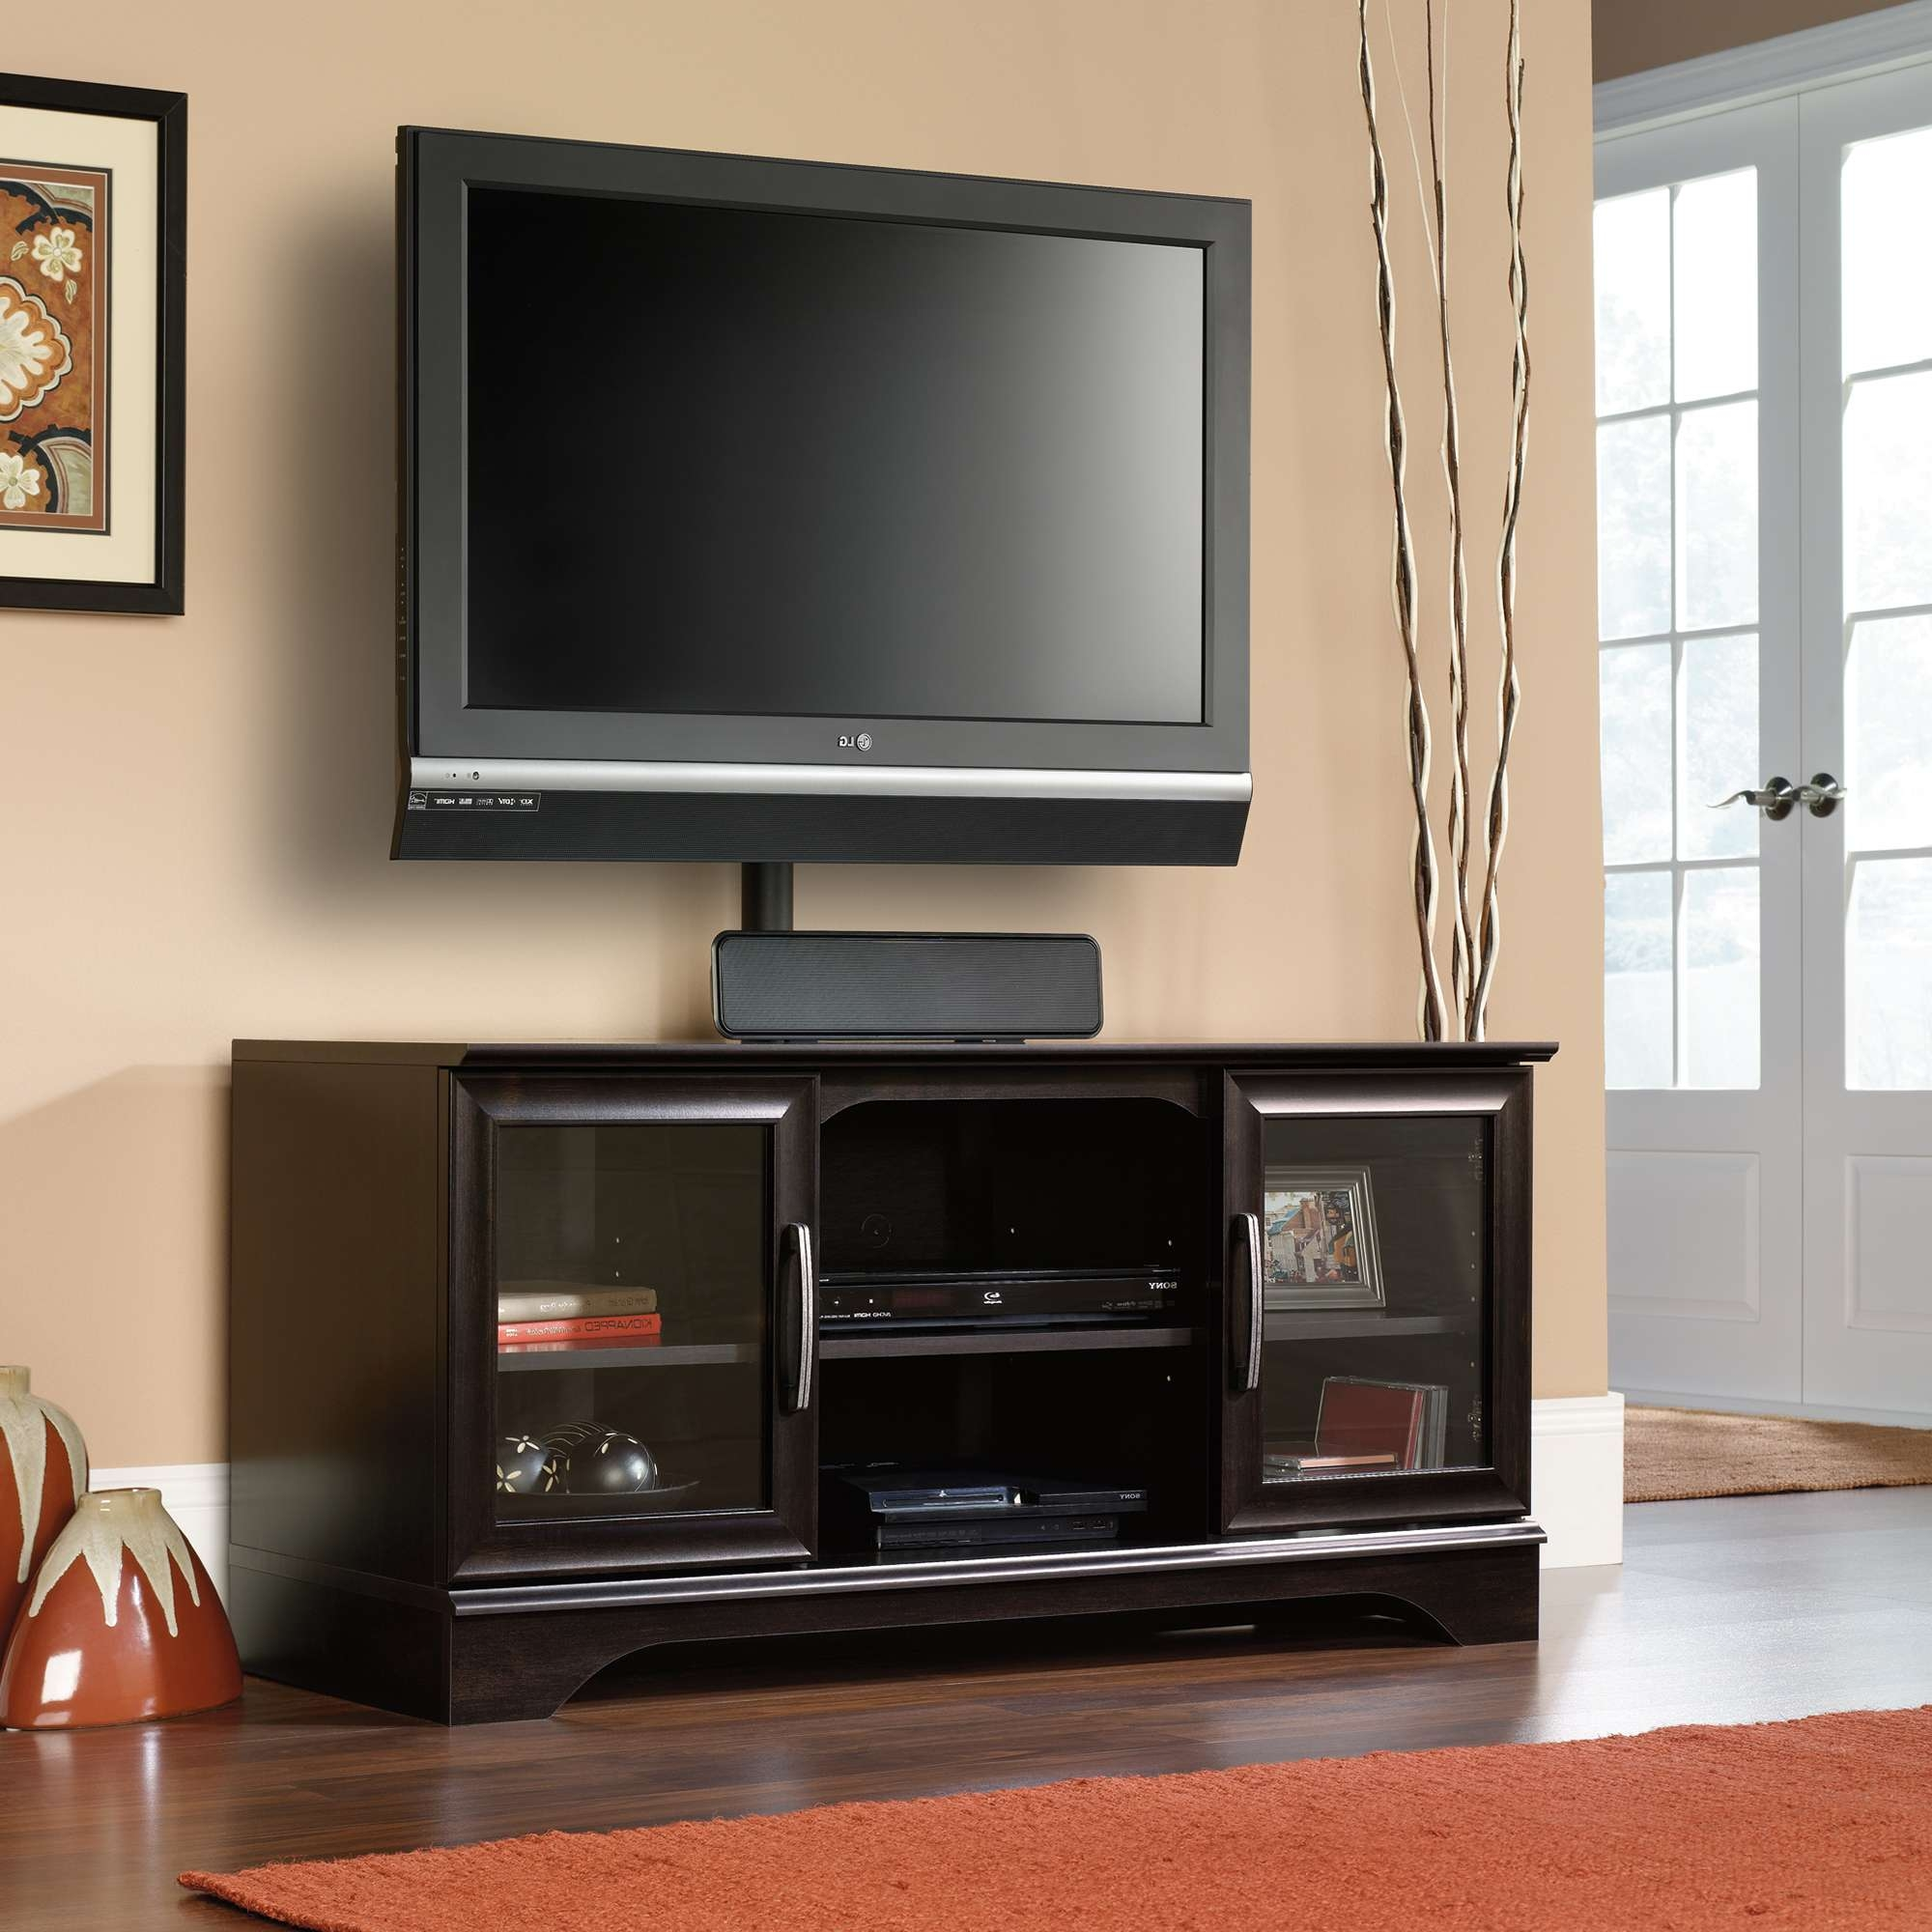 An Overview Of Black Tv Stand With Mount – Furniture Depot With Regard To Tv Stands With Mount (View 11 of 15)